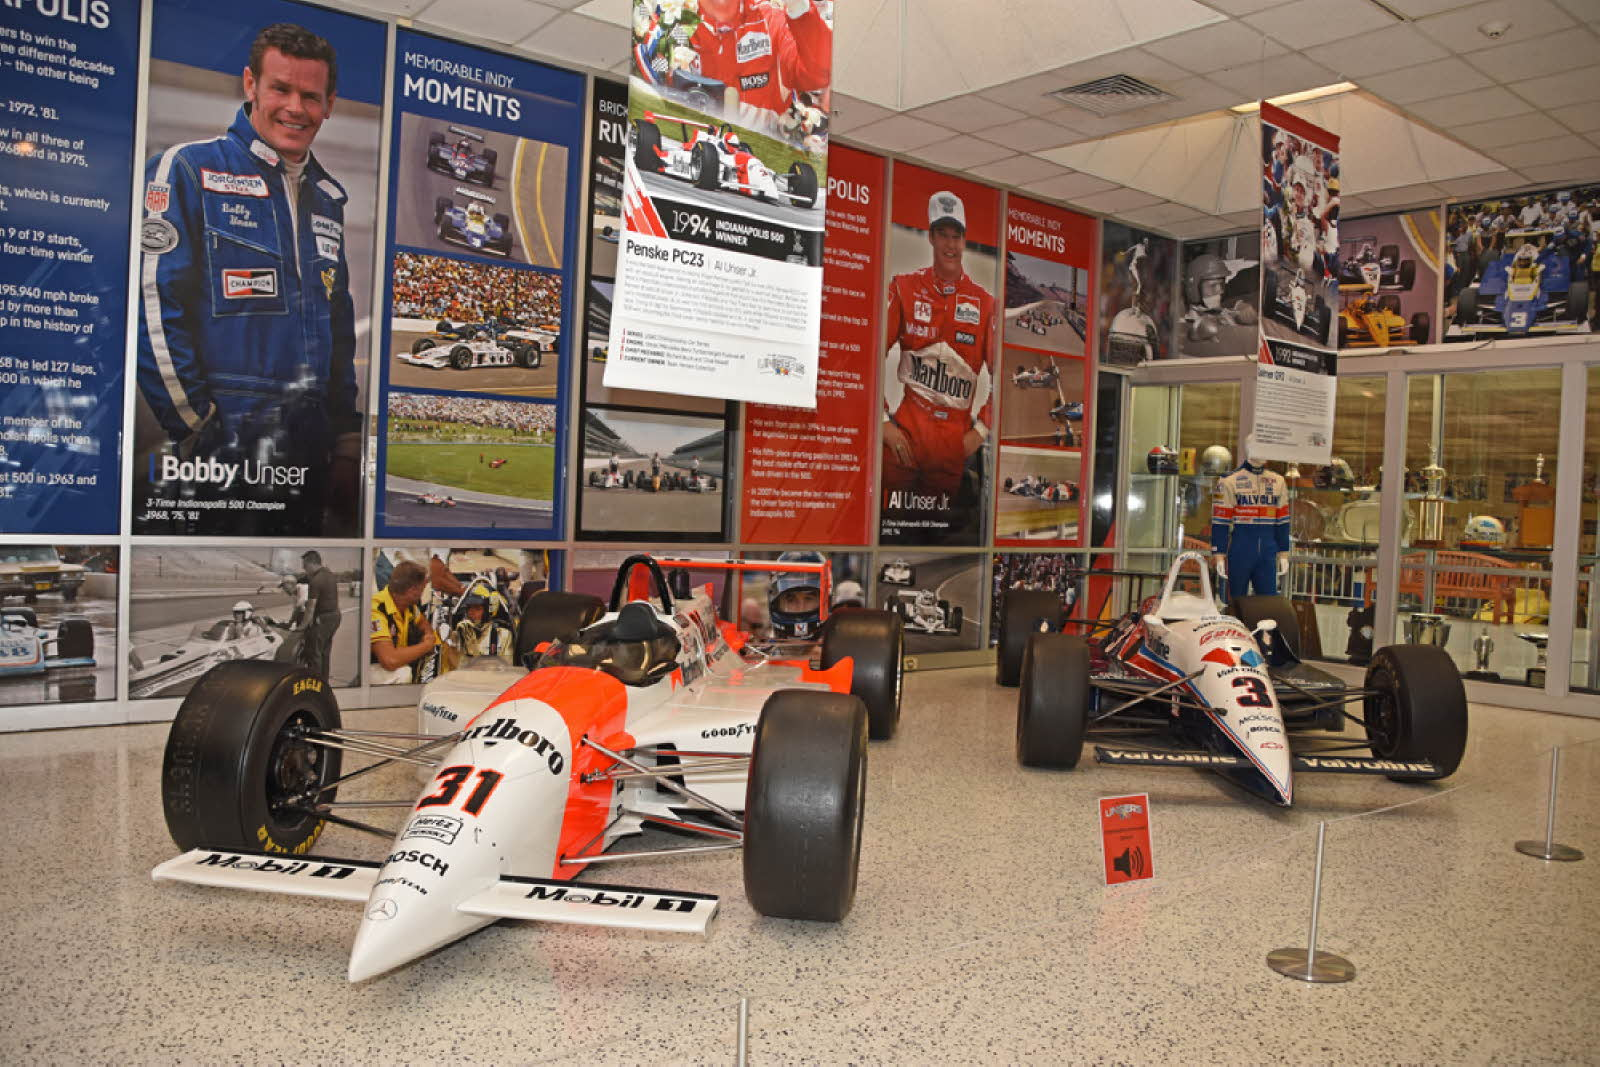 Al Unser, Jr.'s winning cars. [Joe Jennings Photo]